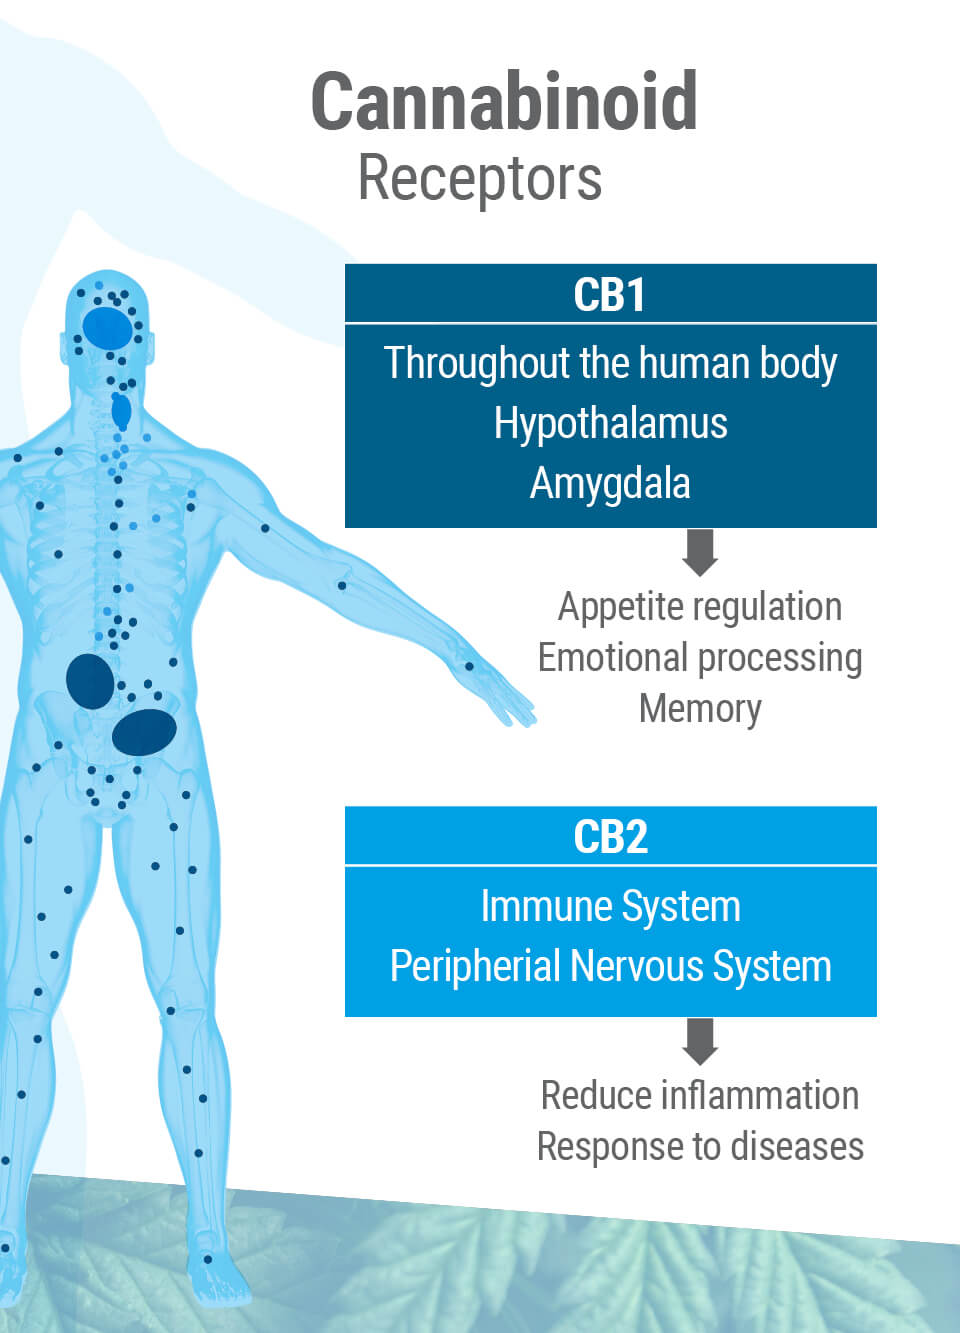 Cannabinoid Receptors, CB1 and CB2